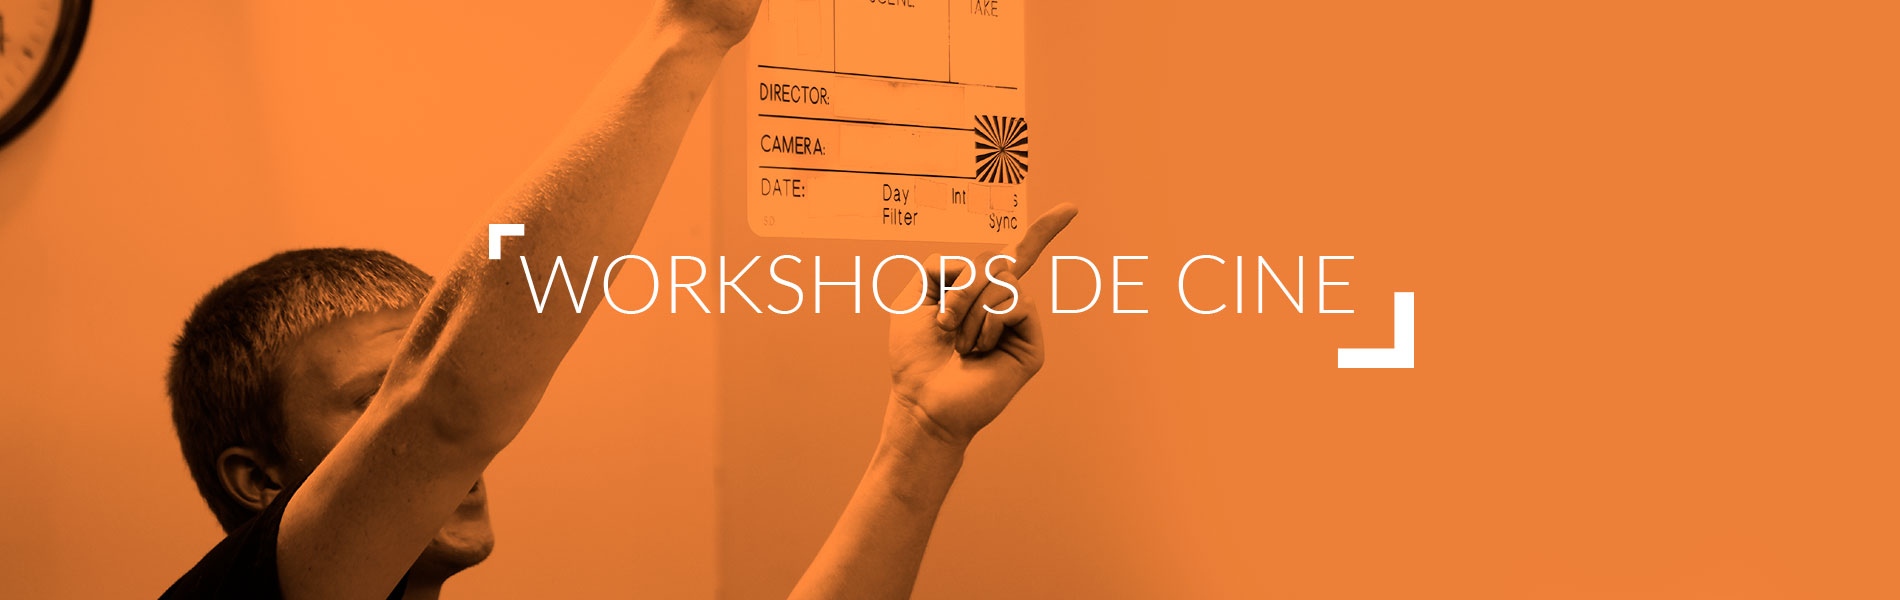 Workshops de Cine